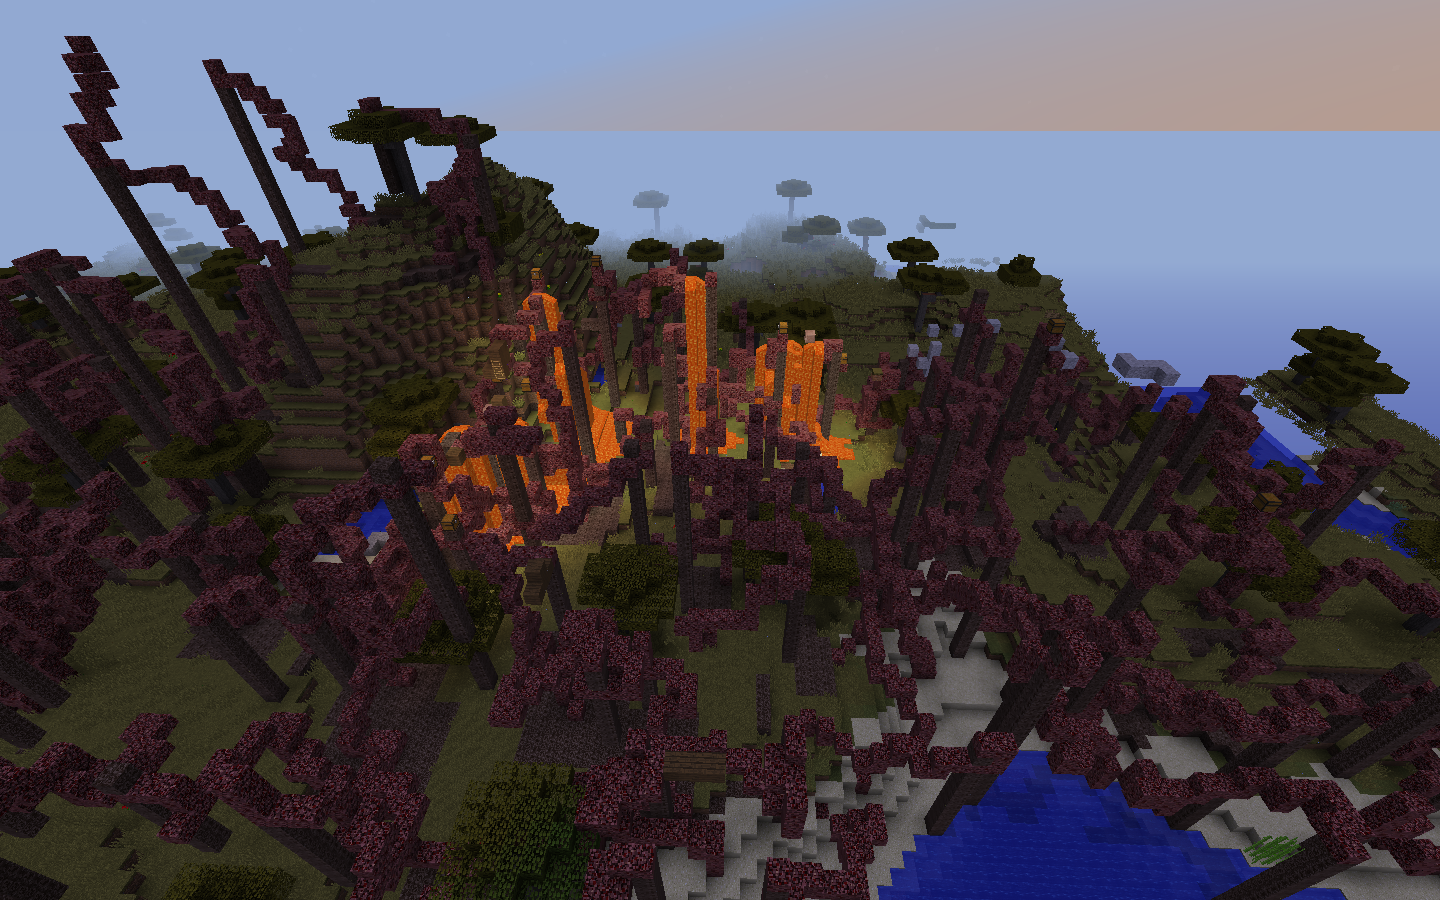 Nether to over world maps mapping and modding java edition 2015 09 19171918 gumiabroncs Choice Image